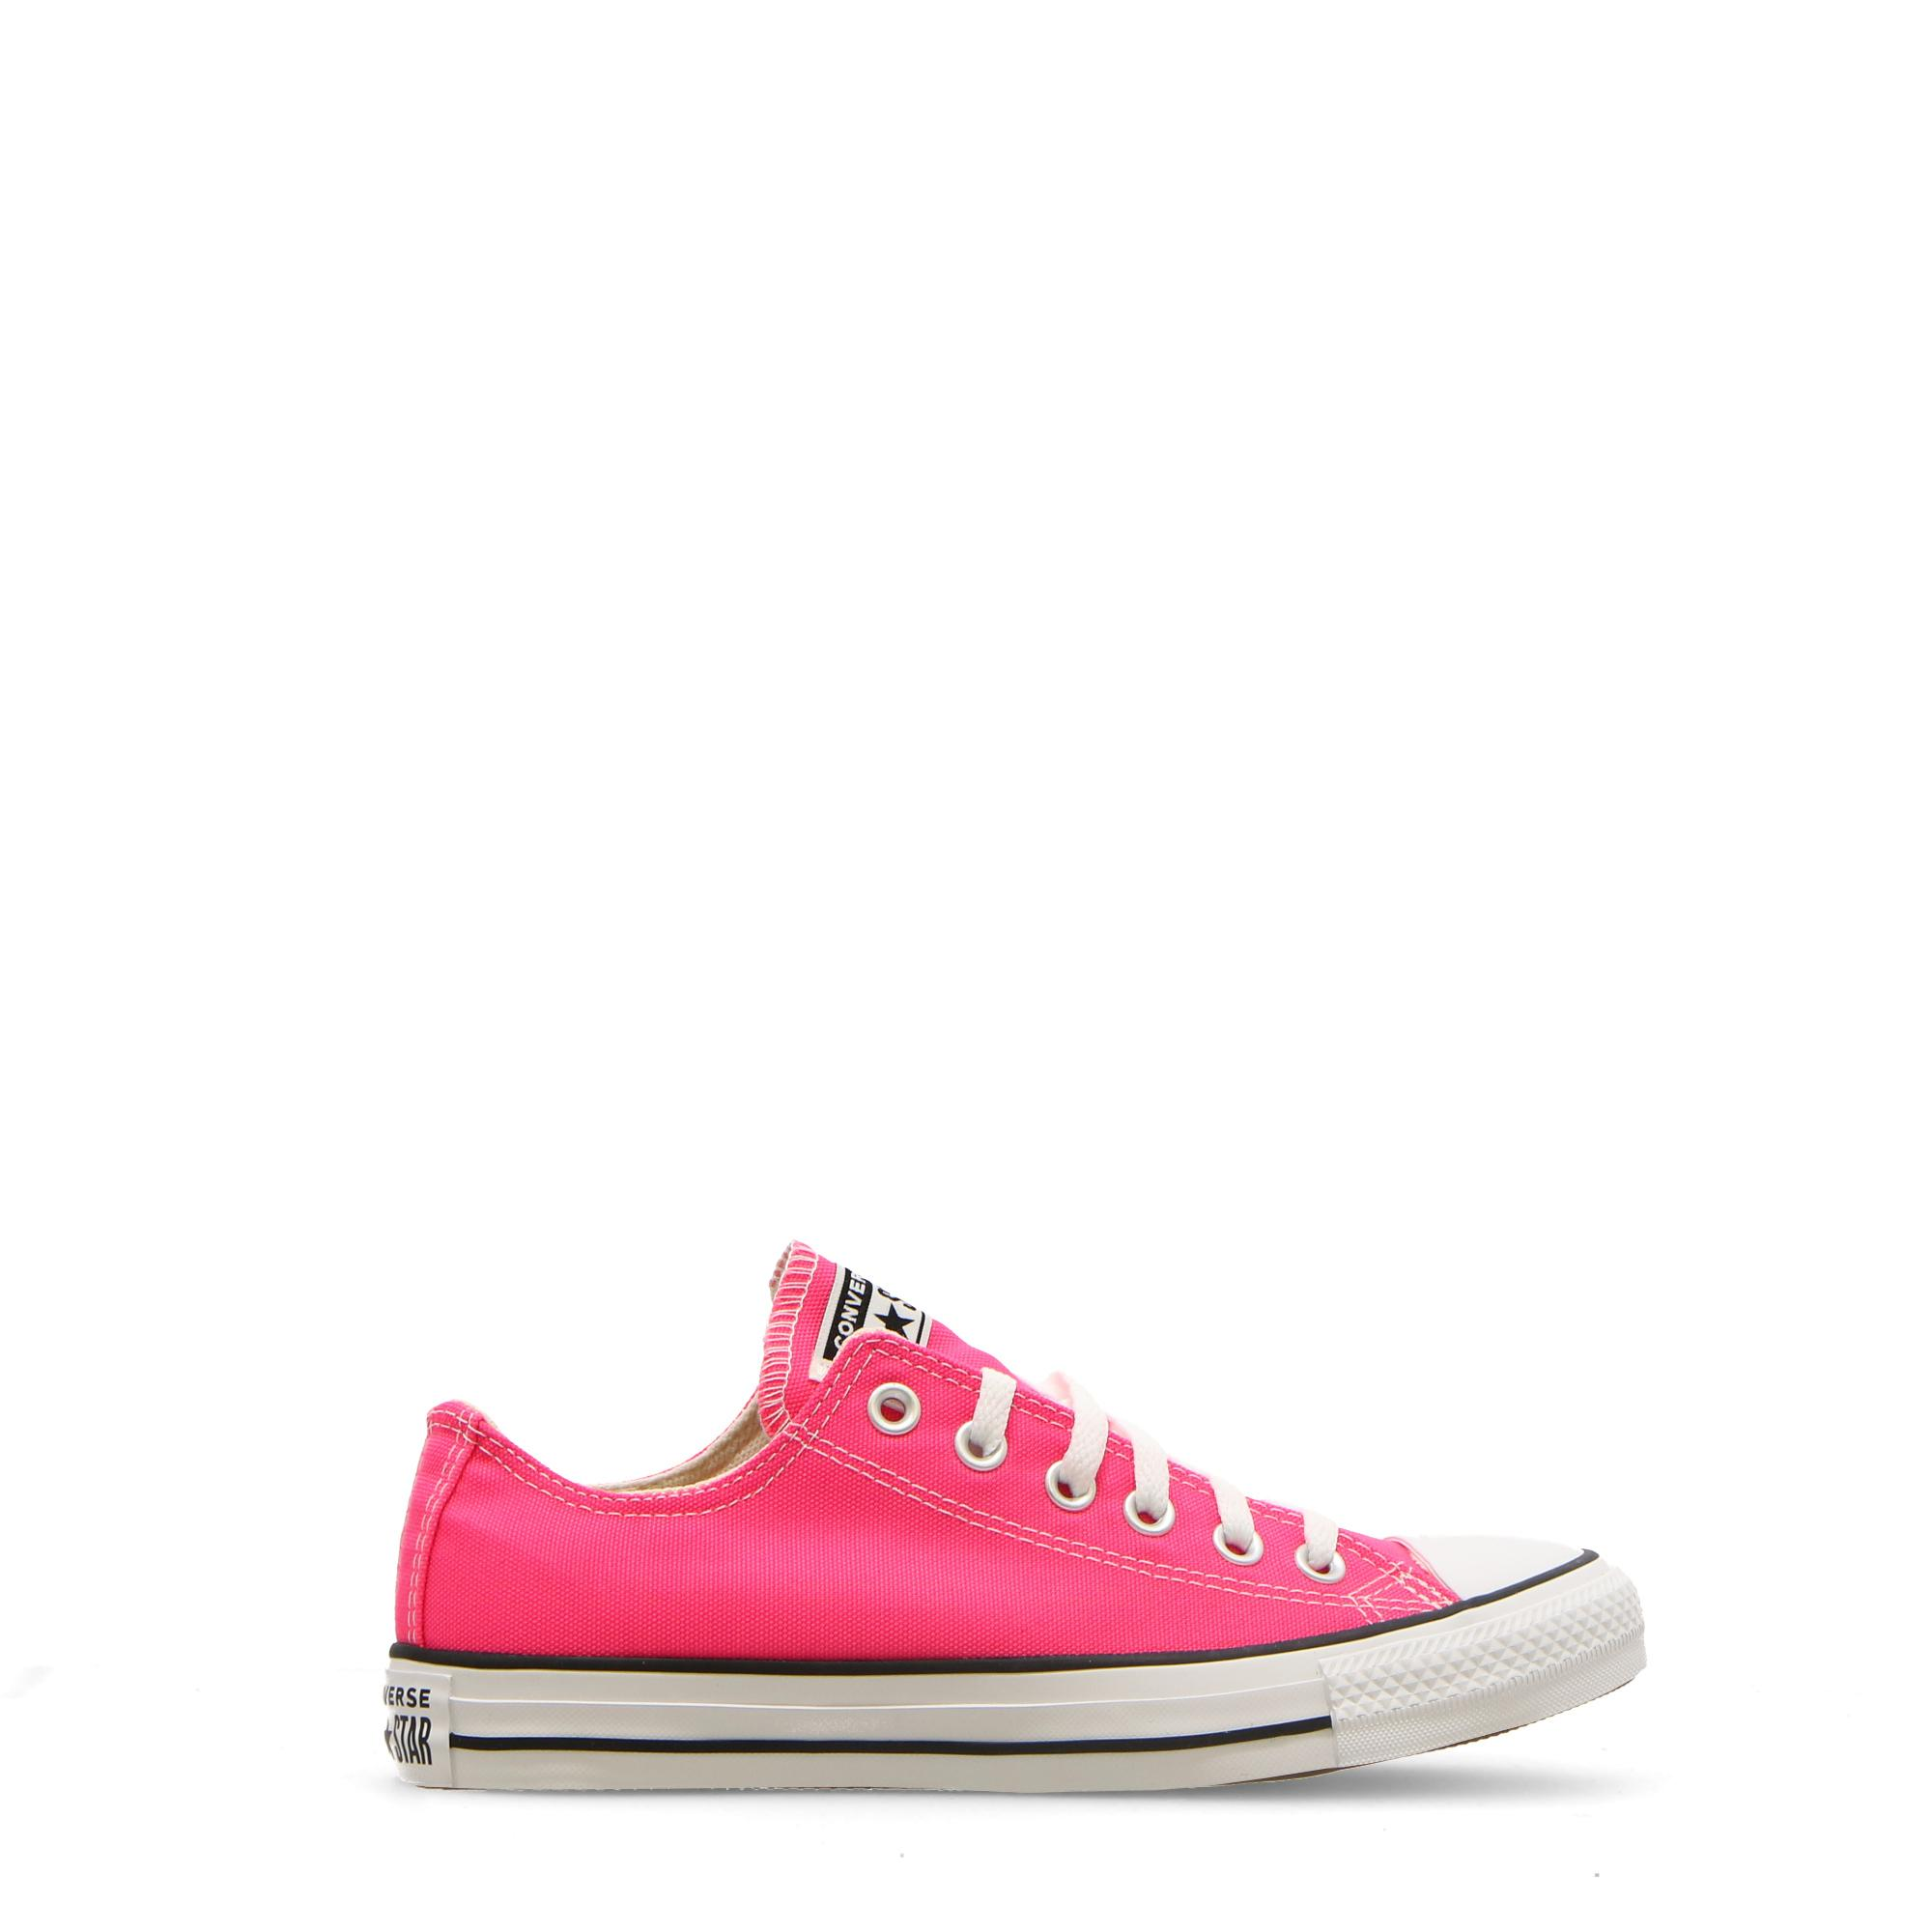 Converse Chuck Taylor All Star Pet Canvas Seasonal Color Ox Hyper pink